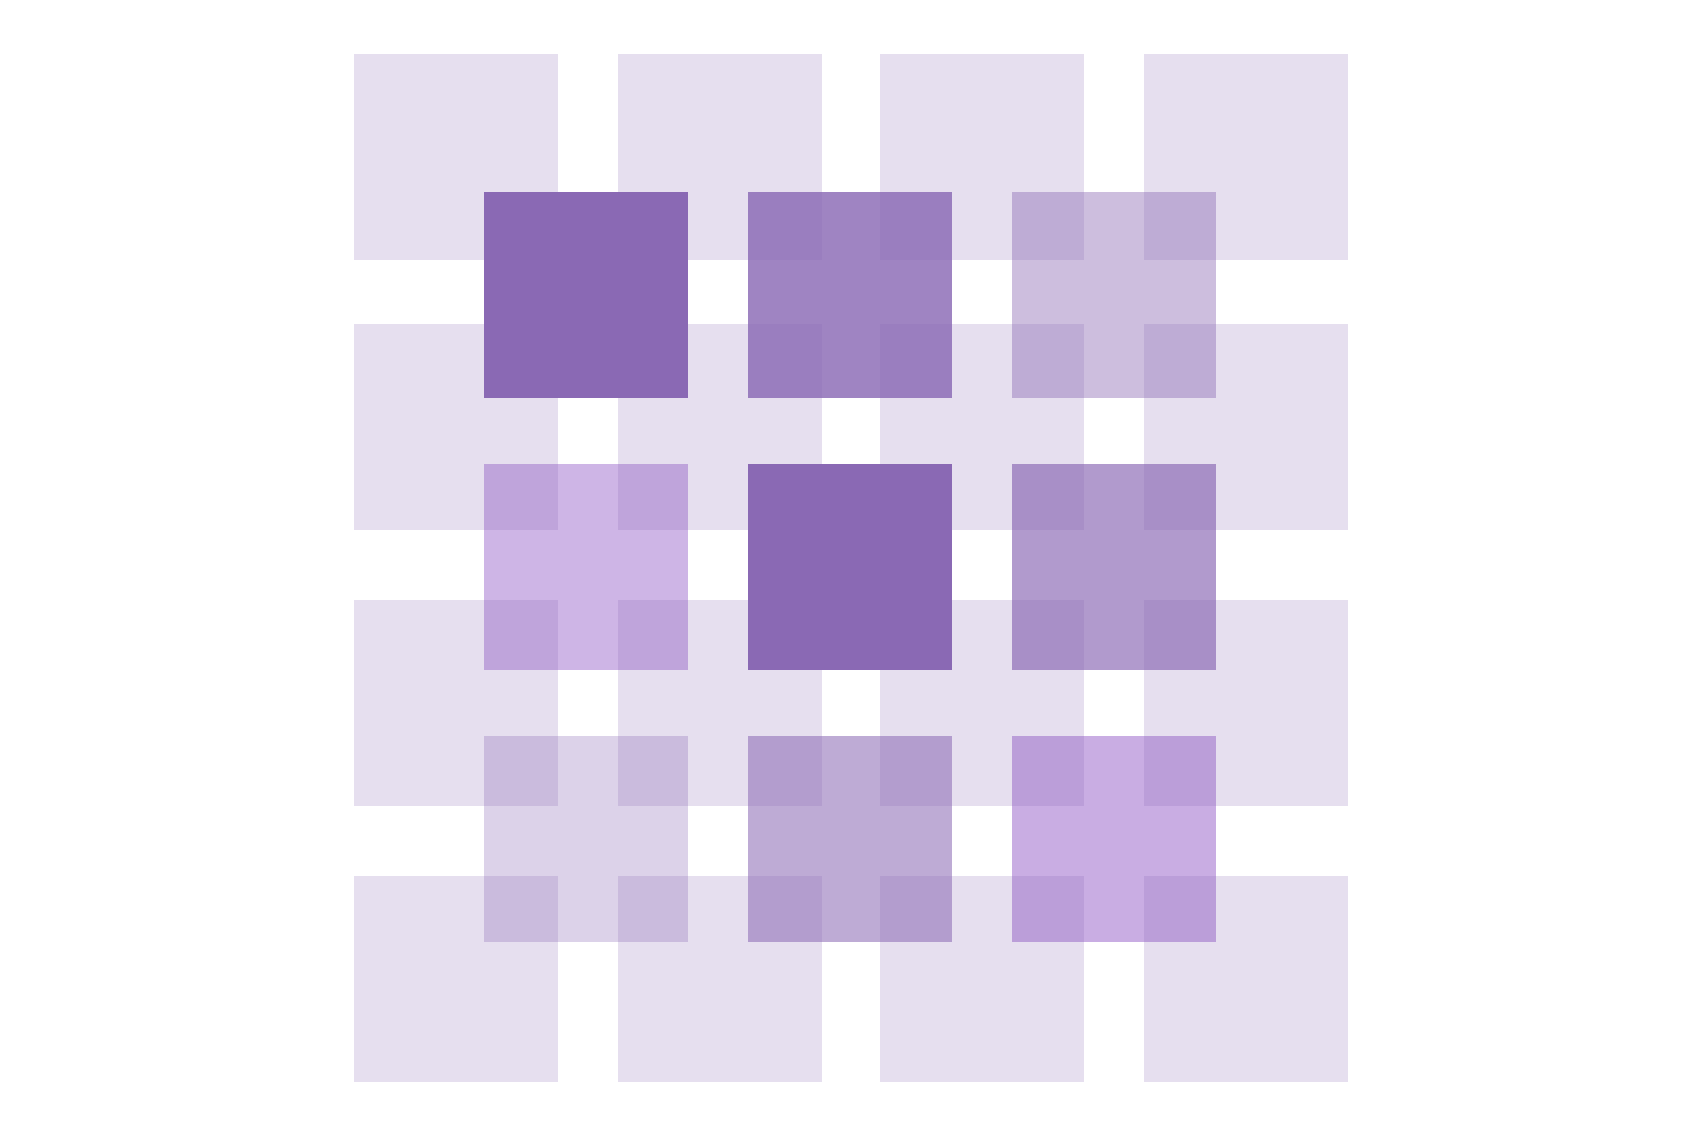 An abstract image showing a grid of squares, with a second grid on top, to representing building and scaling a sytem